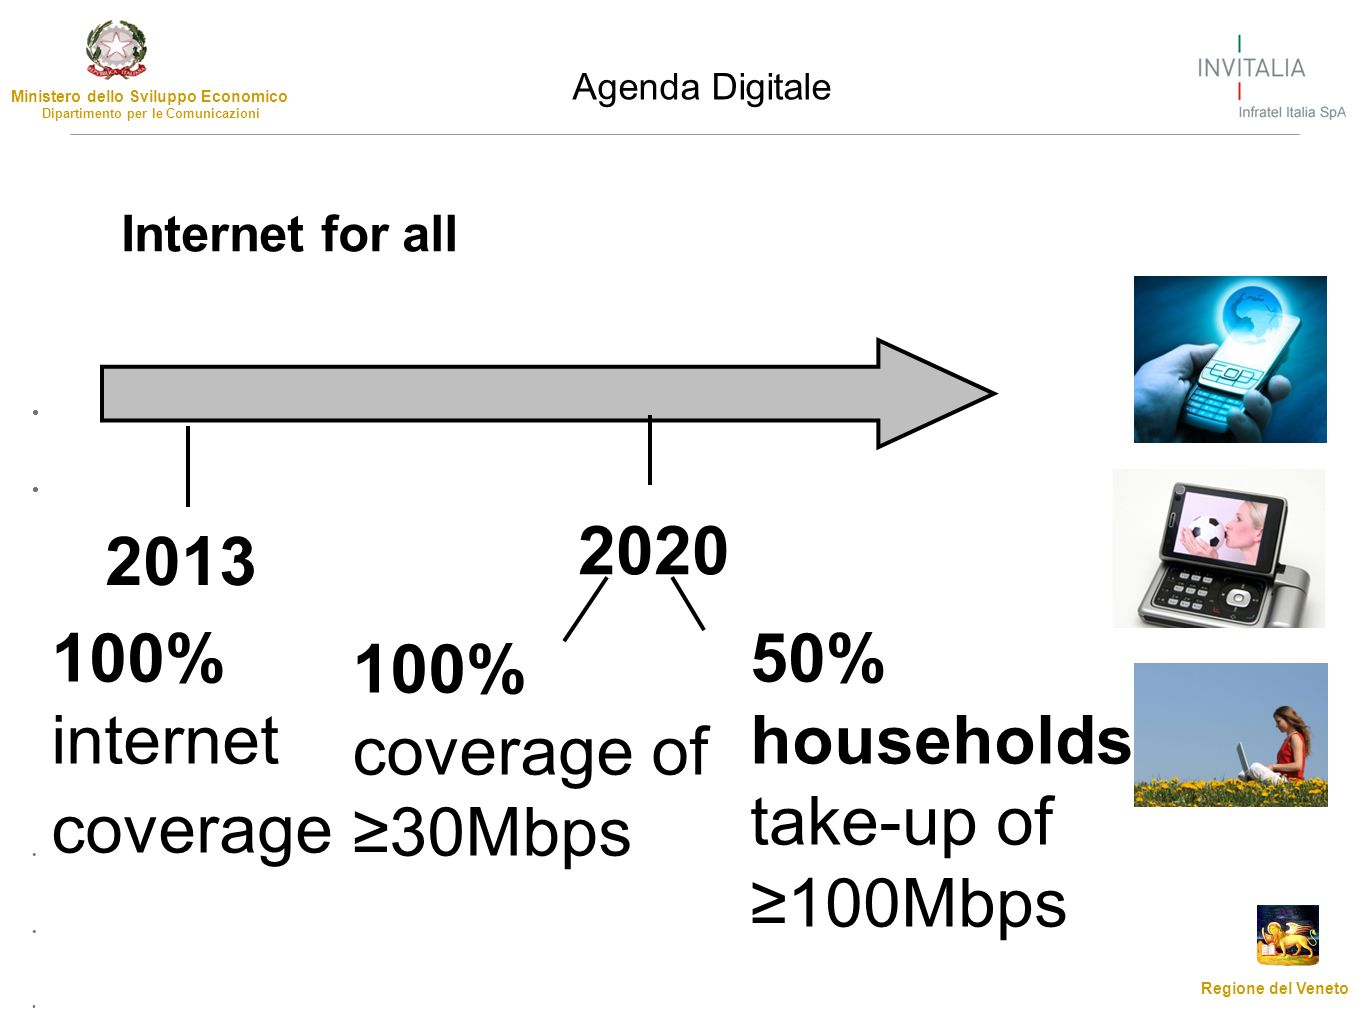 Ministero dello Sviluppo Economico Dipartimento per le Comunicazioni Regione del Veneto Internet for all 2020 2013 100% coverage of 30Mbps 100% intern